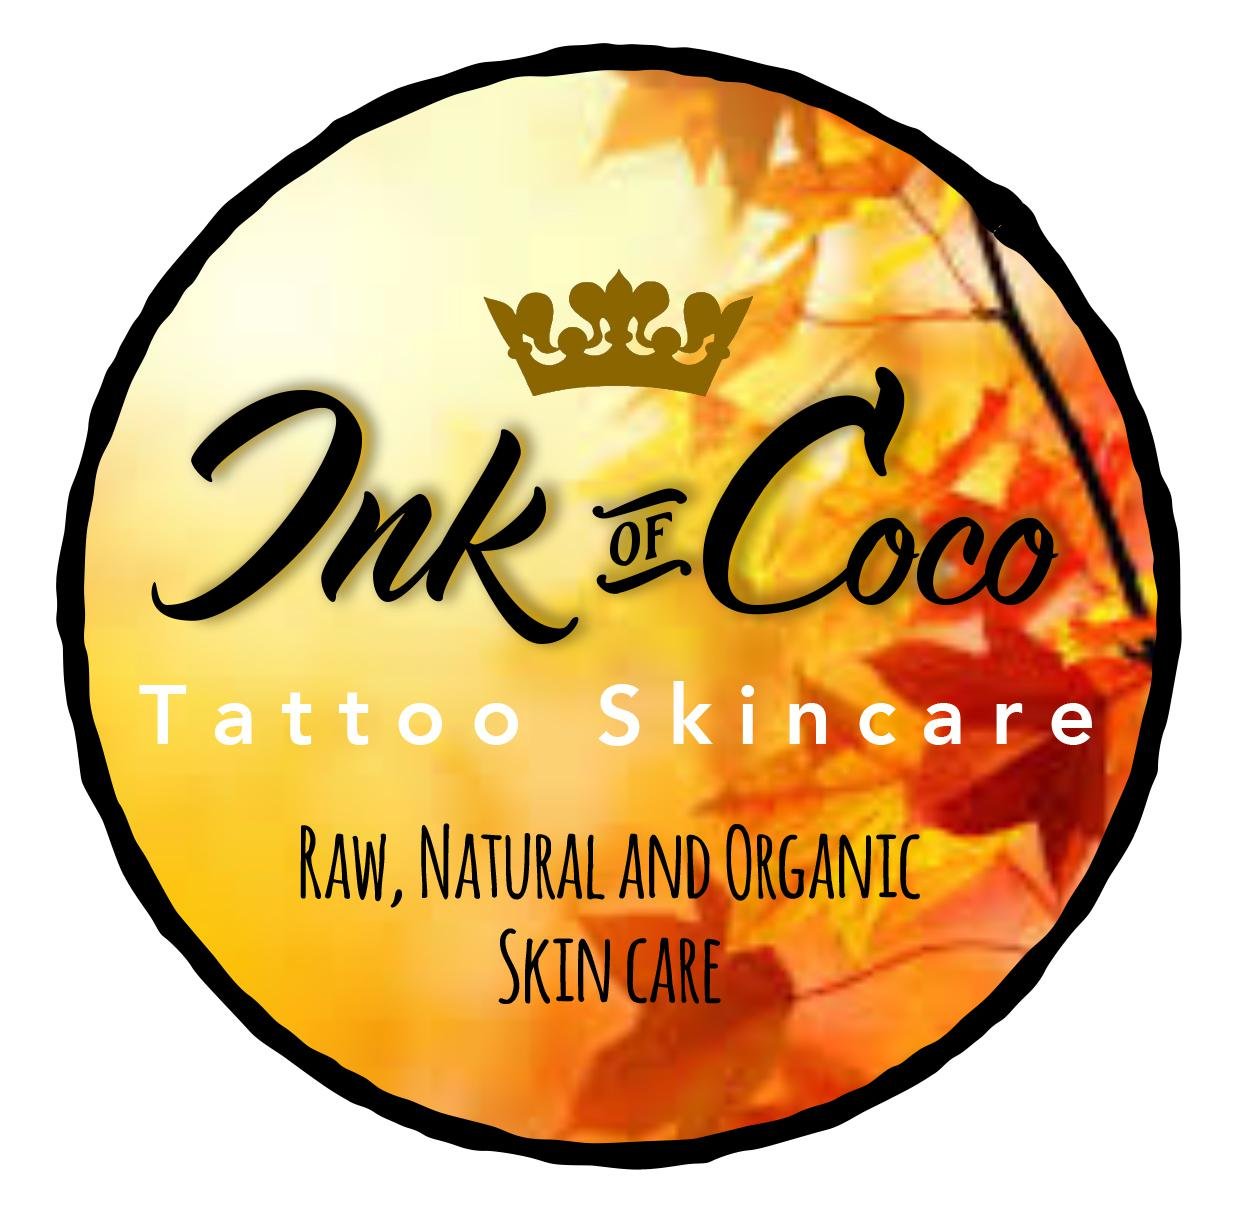 Ink of Coco Tattoo Skincare Logo